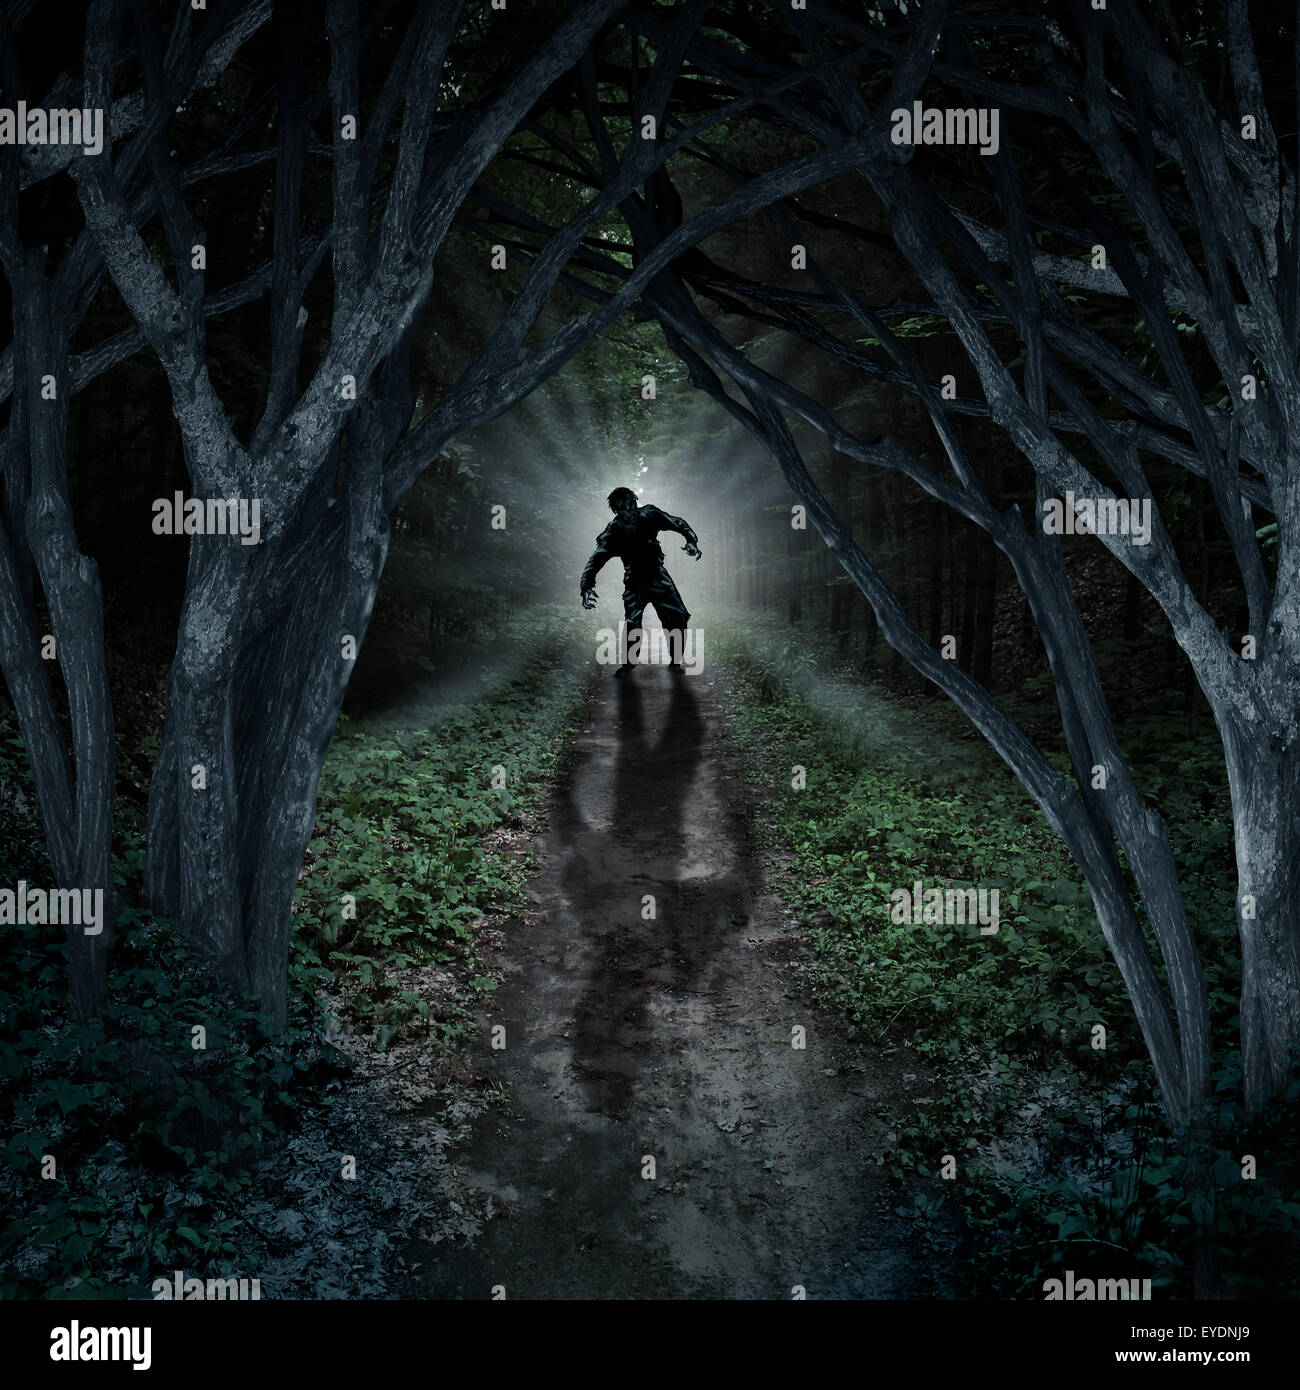 Horror monster walking in a dark forest as a scary fantasy concept with a creepy thing coming out of a remote wilderness - Stock Image